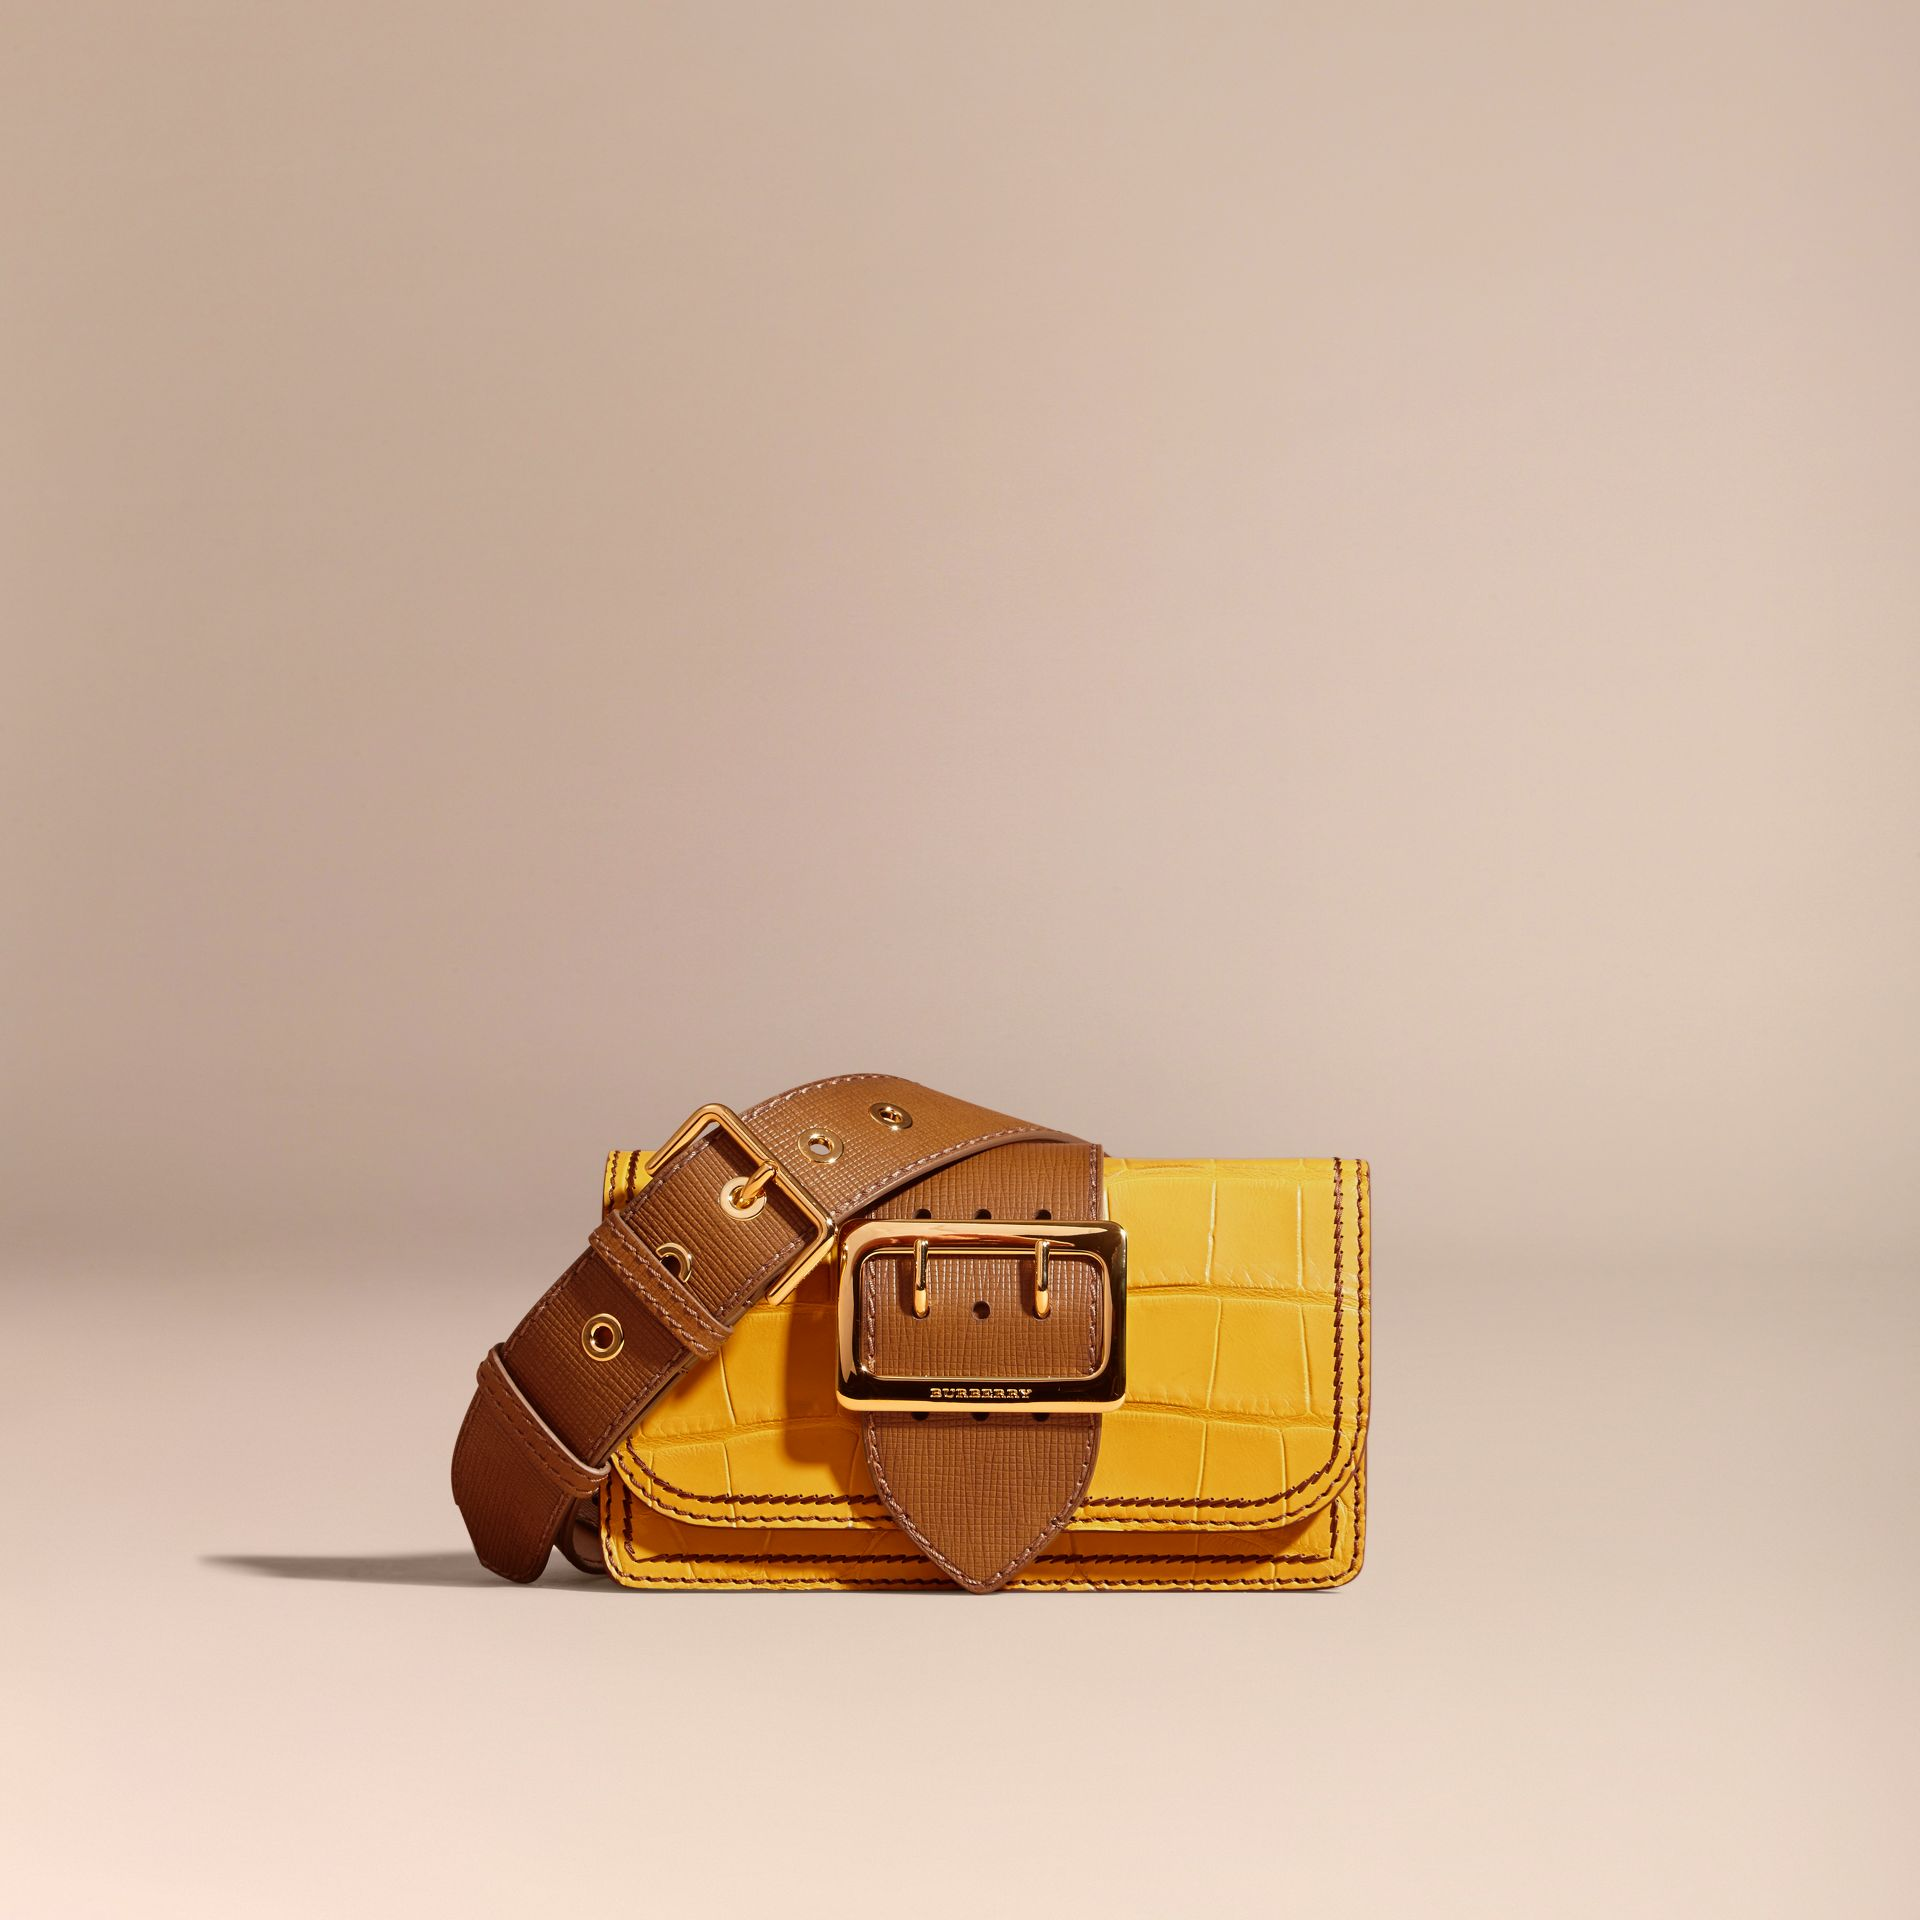 Jaune agrume/hâle Petit sac The Buckle en alligator et cuir Jaune Agrume/hâle - photo de la galerie 9